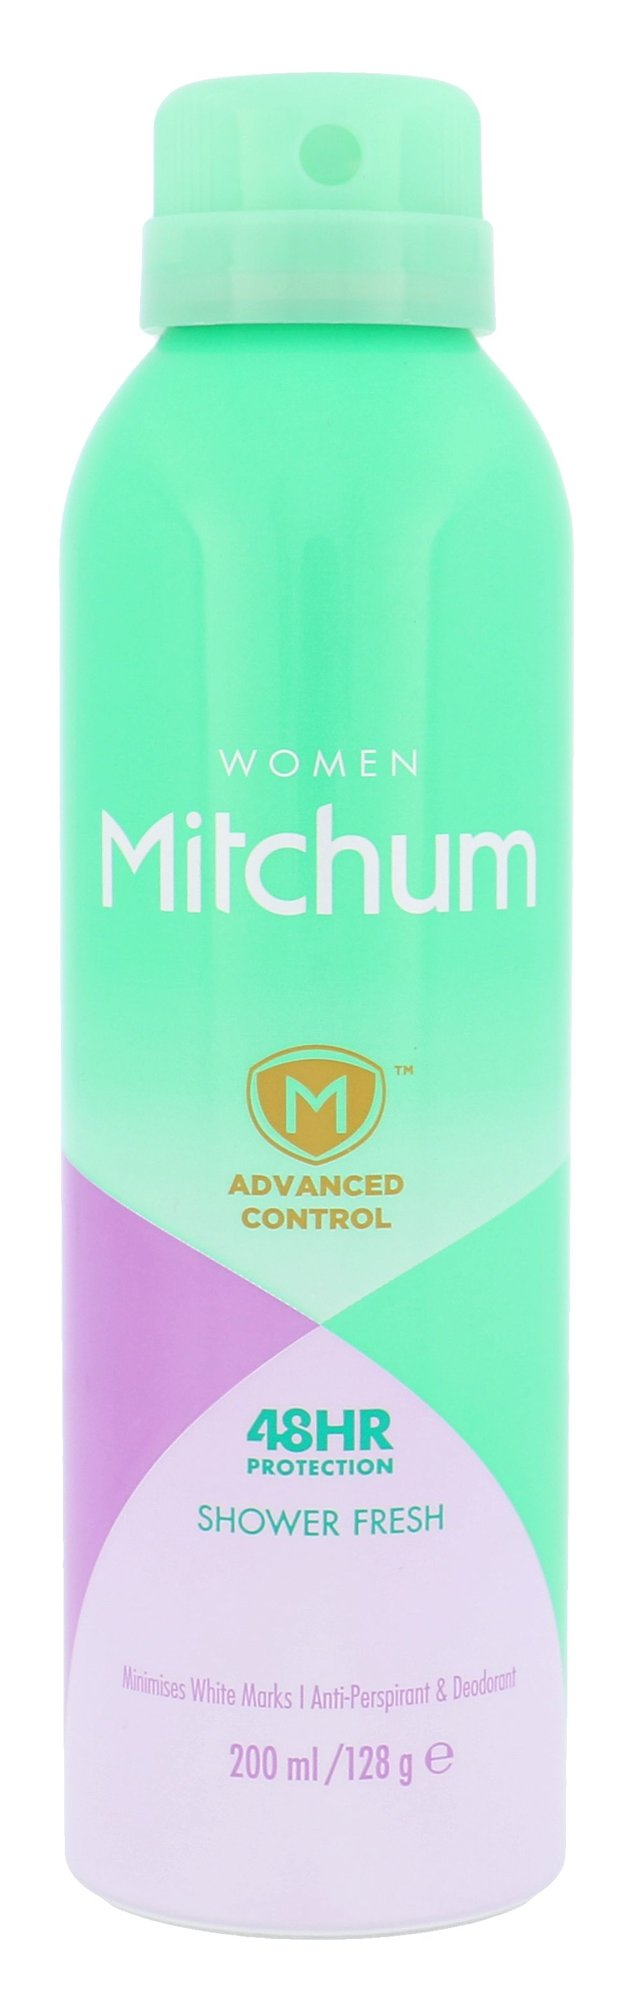 Mitchum Advanced Control 48HR Antiperspirant, W, 200 ml